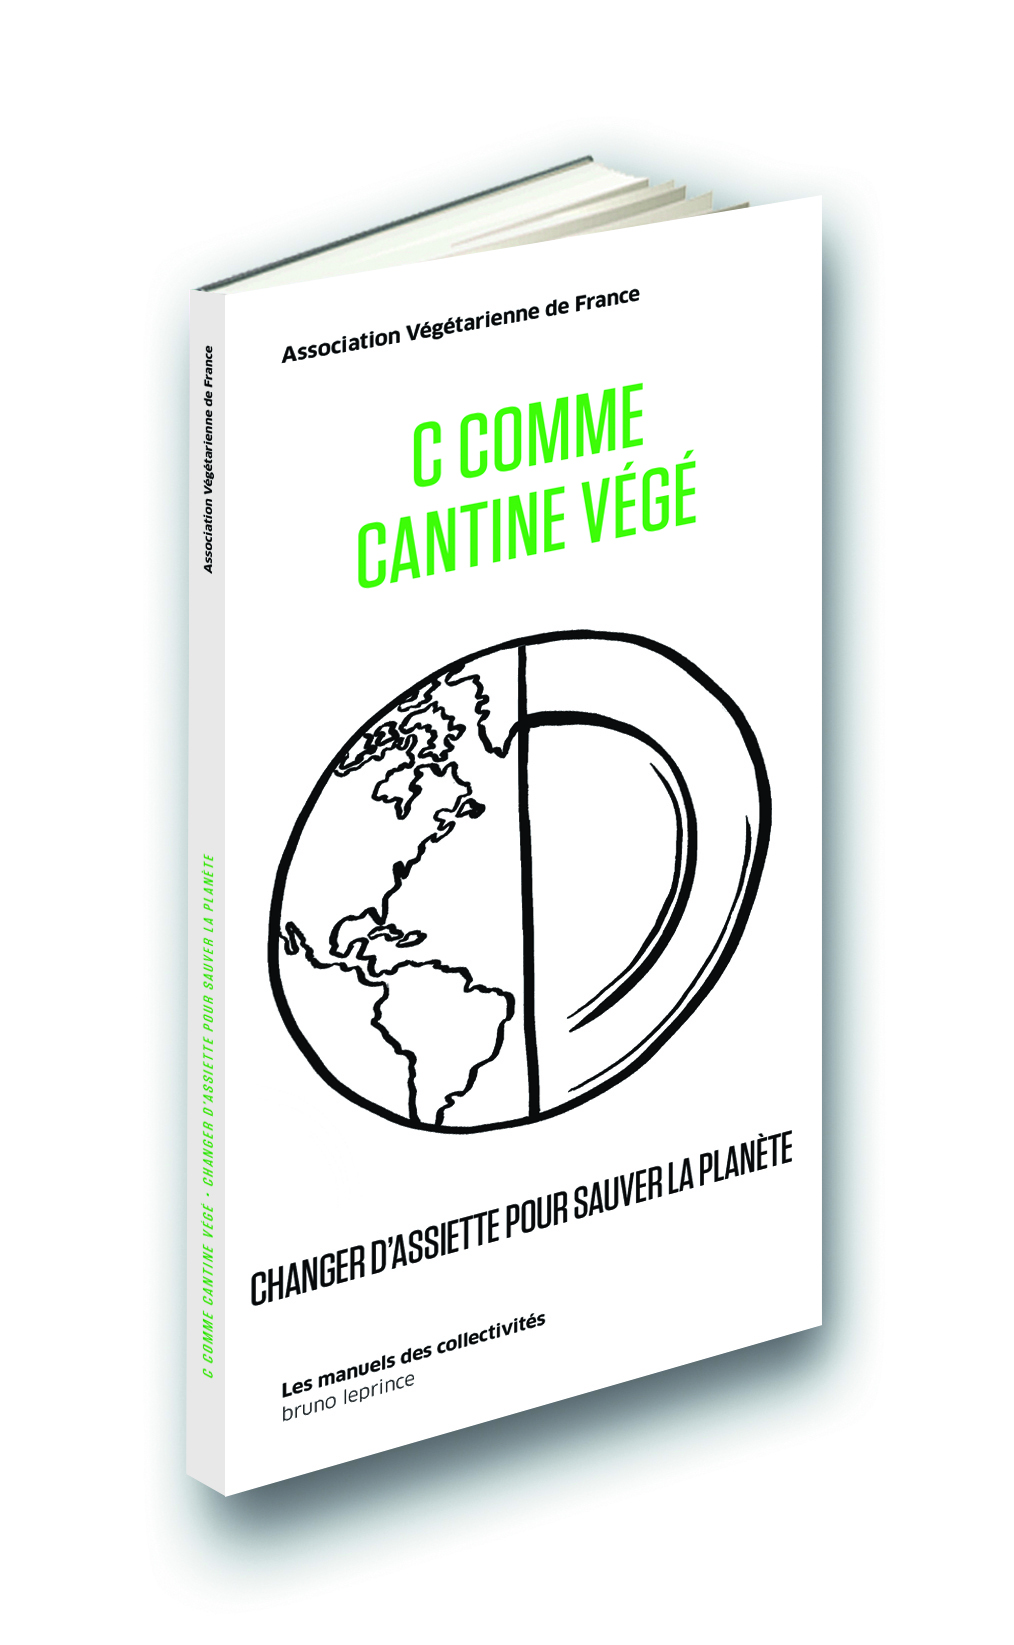 C COMME CANTINE VEGE